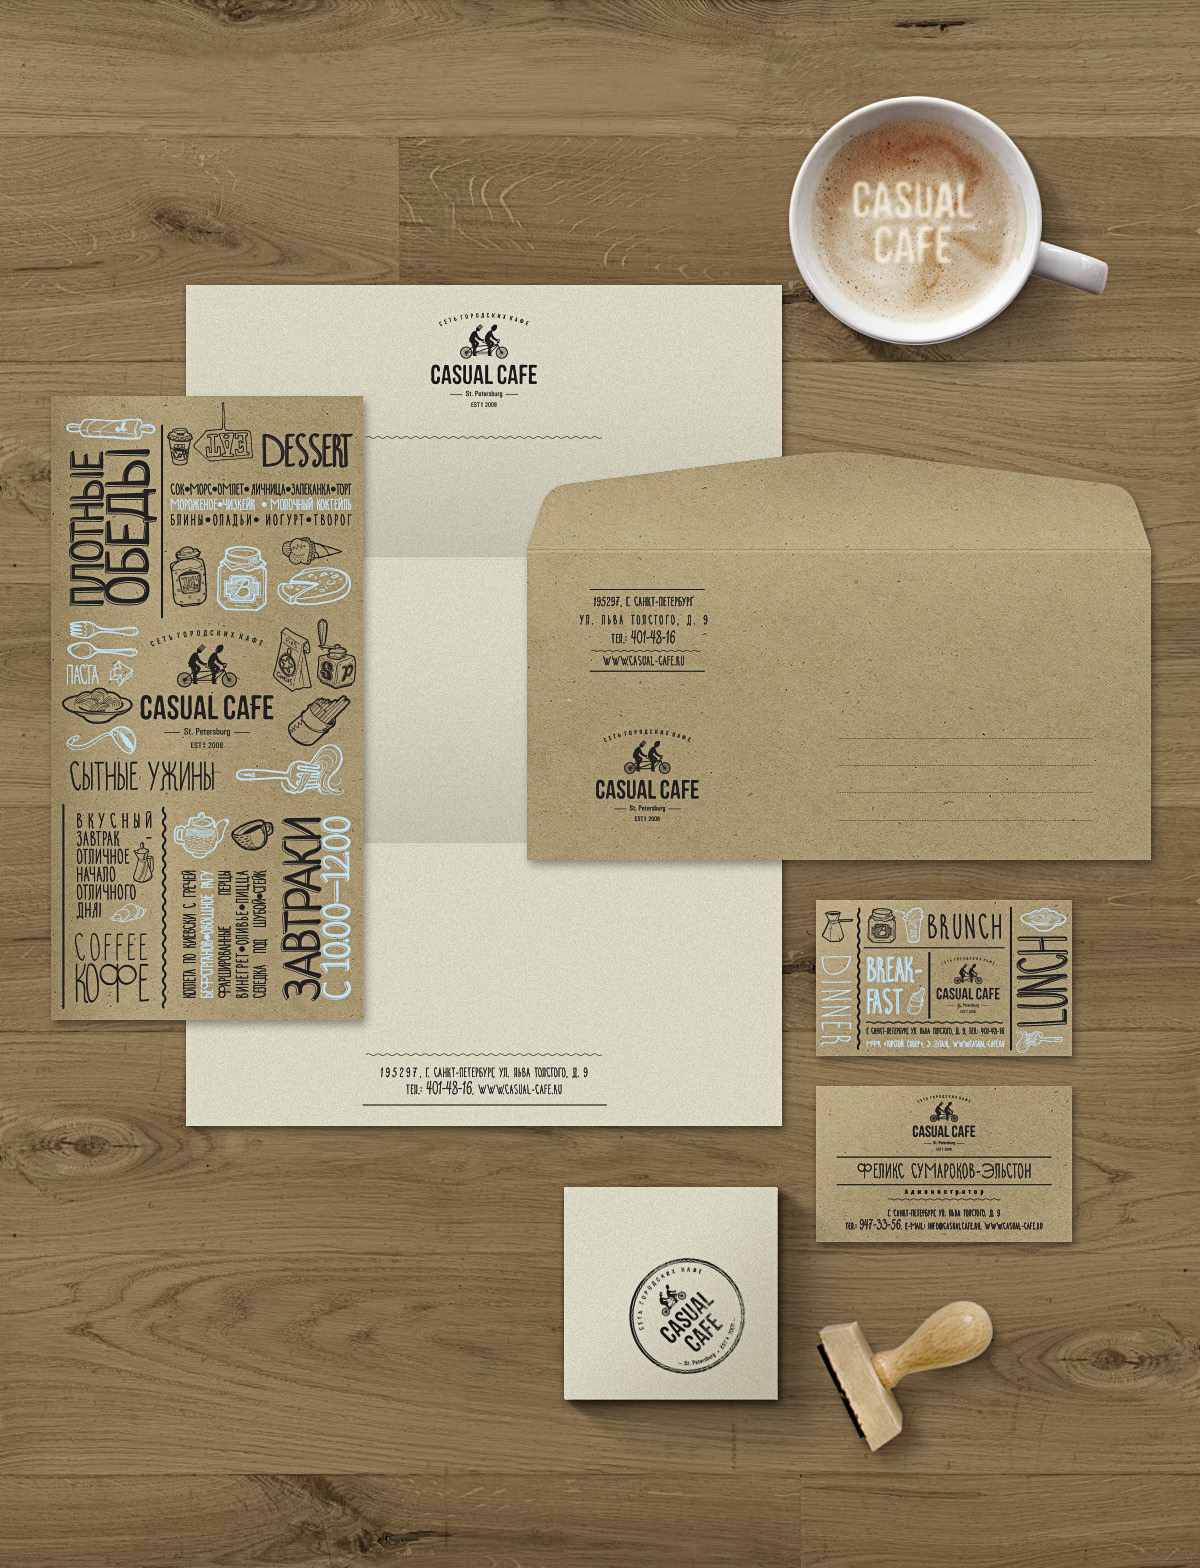 Casual cafe identity